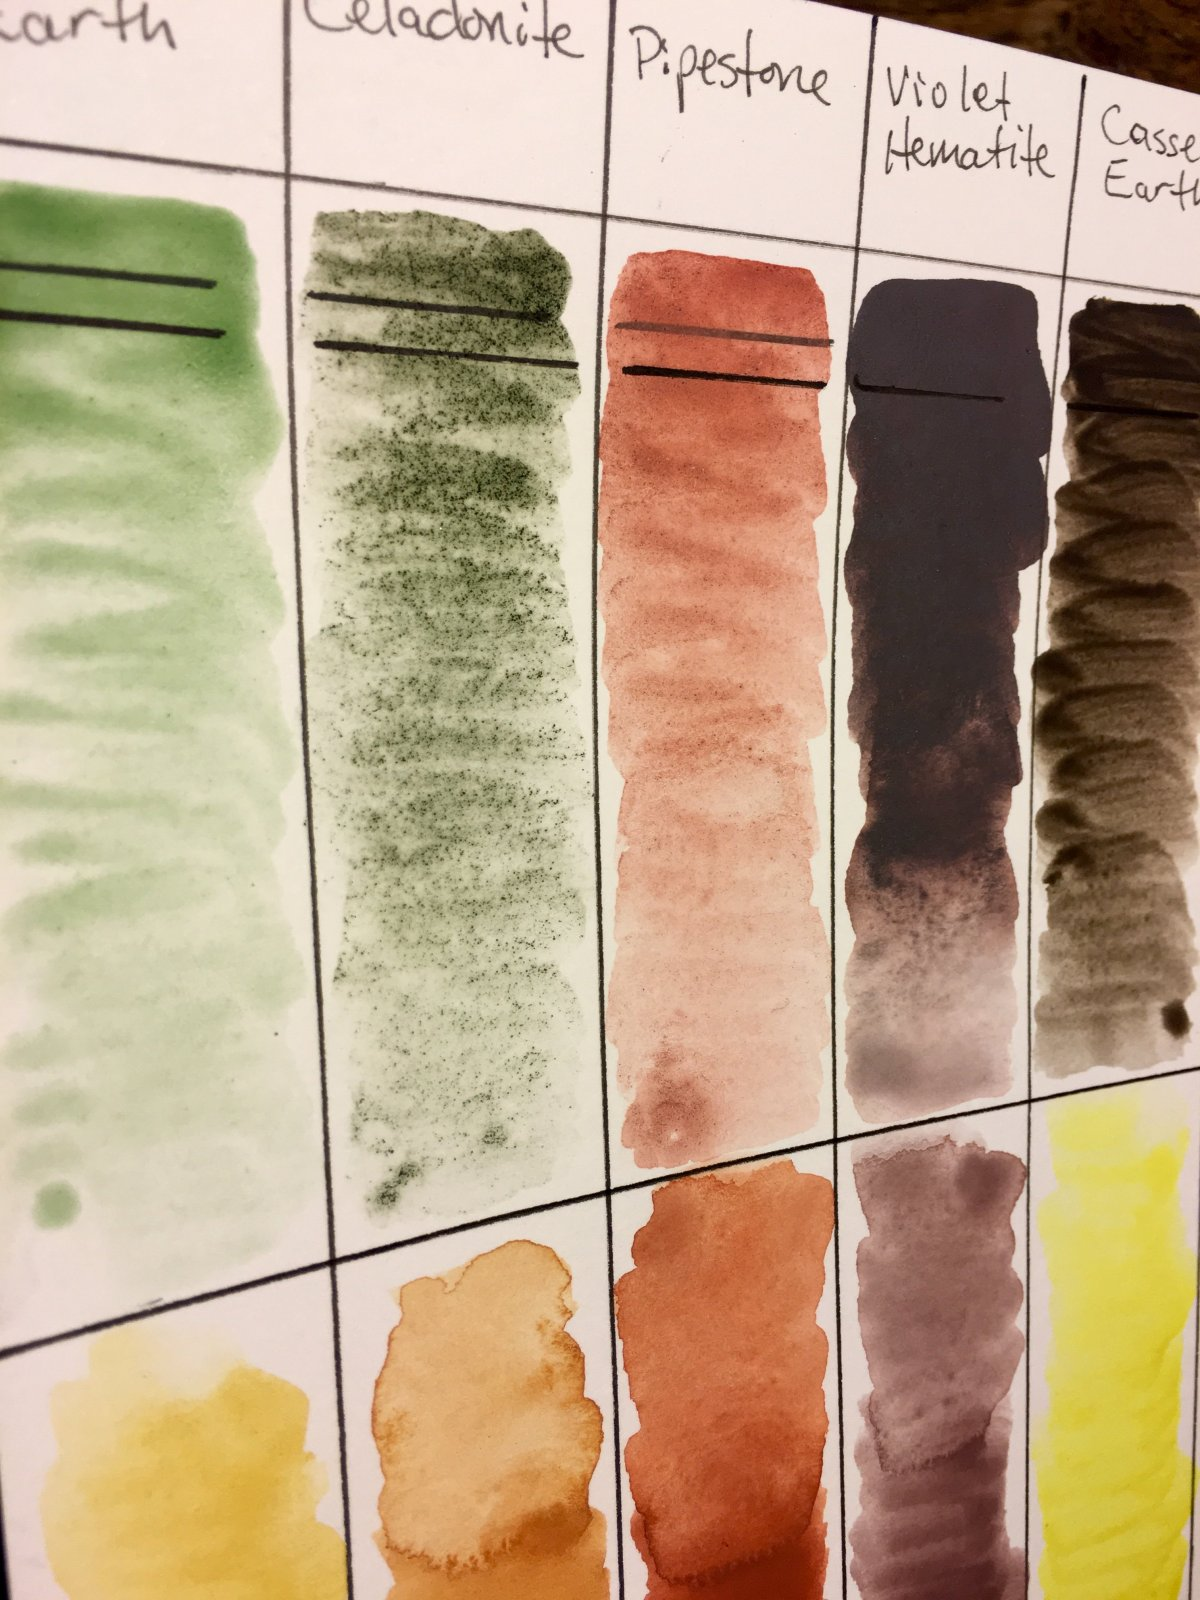 Fresh watercolor swatch of Greenleaf & Blueberry watercolors, Celadonite, Pipestone, Violet Hermatite, Close-up